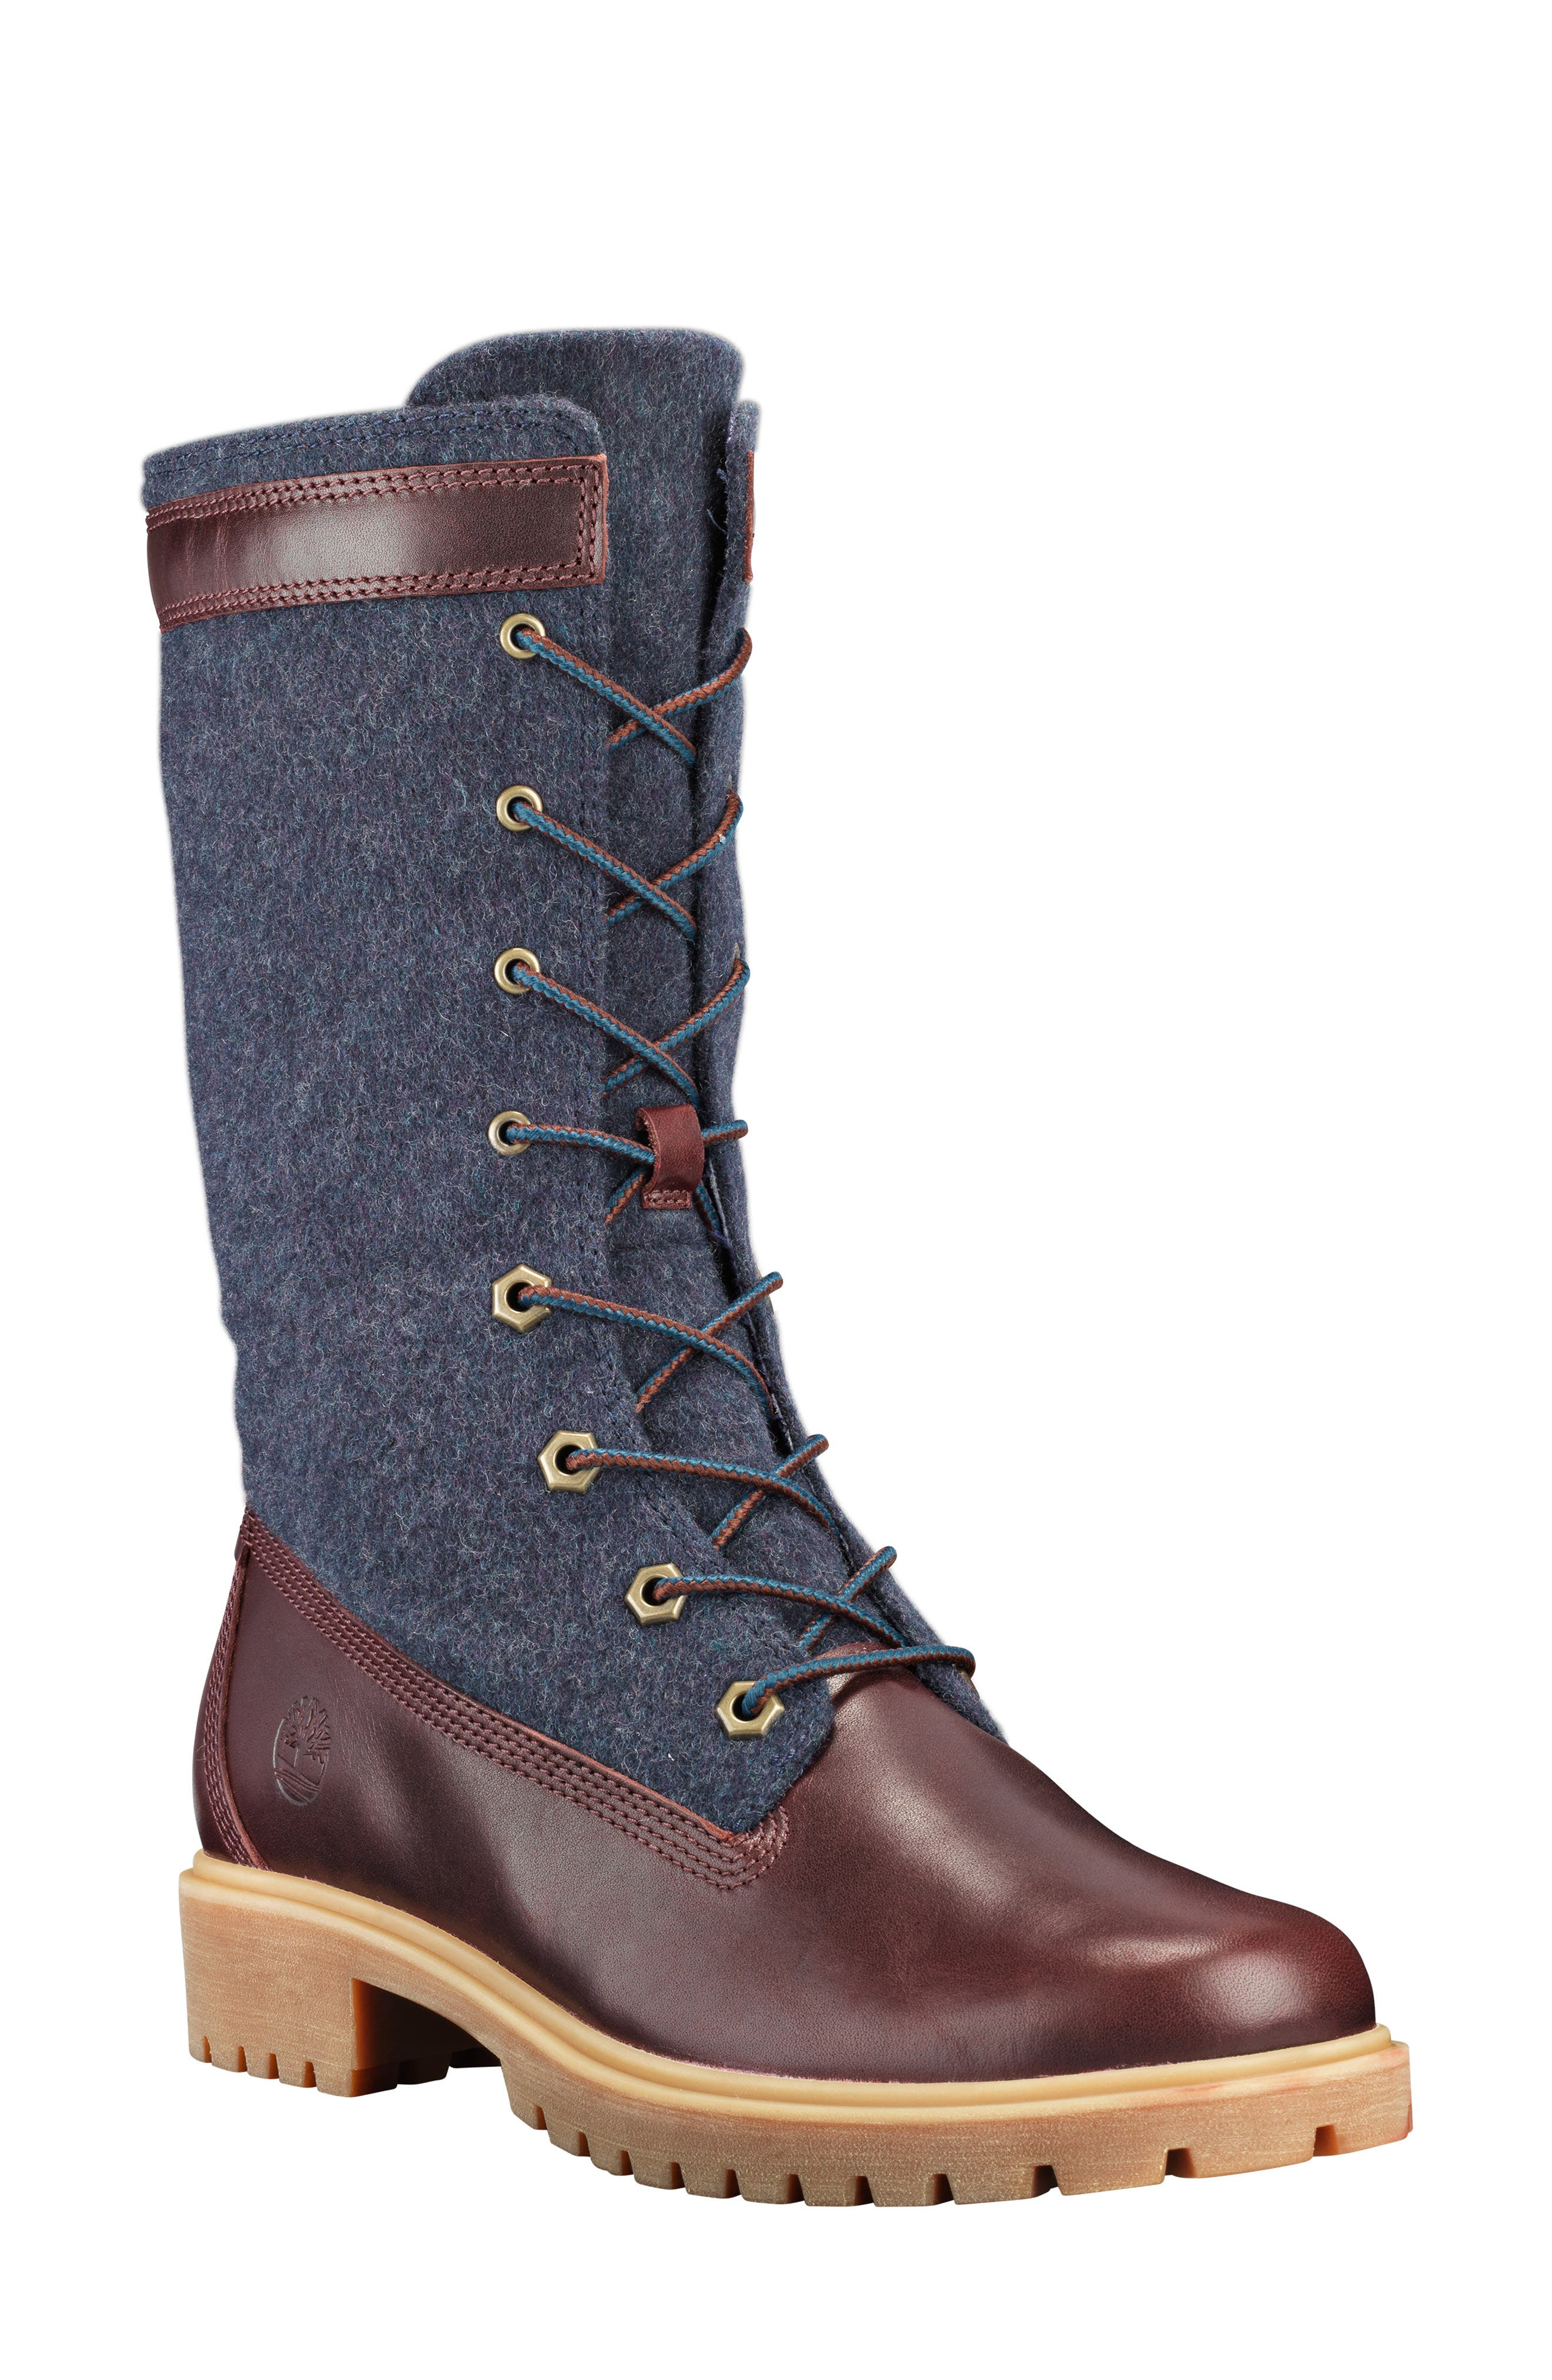 Timberland Jayne Waterproof Gaiter Boot- Burgundy